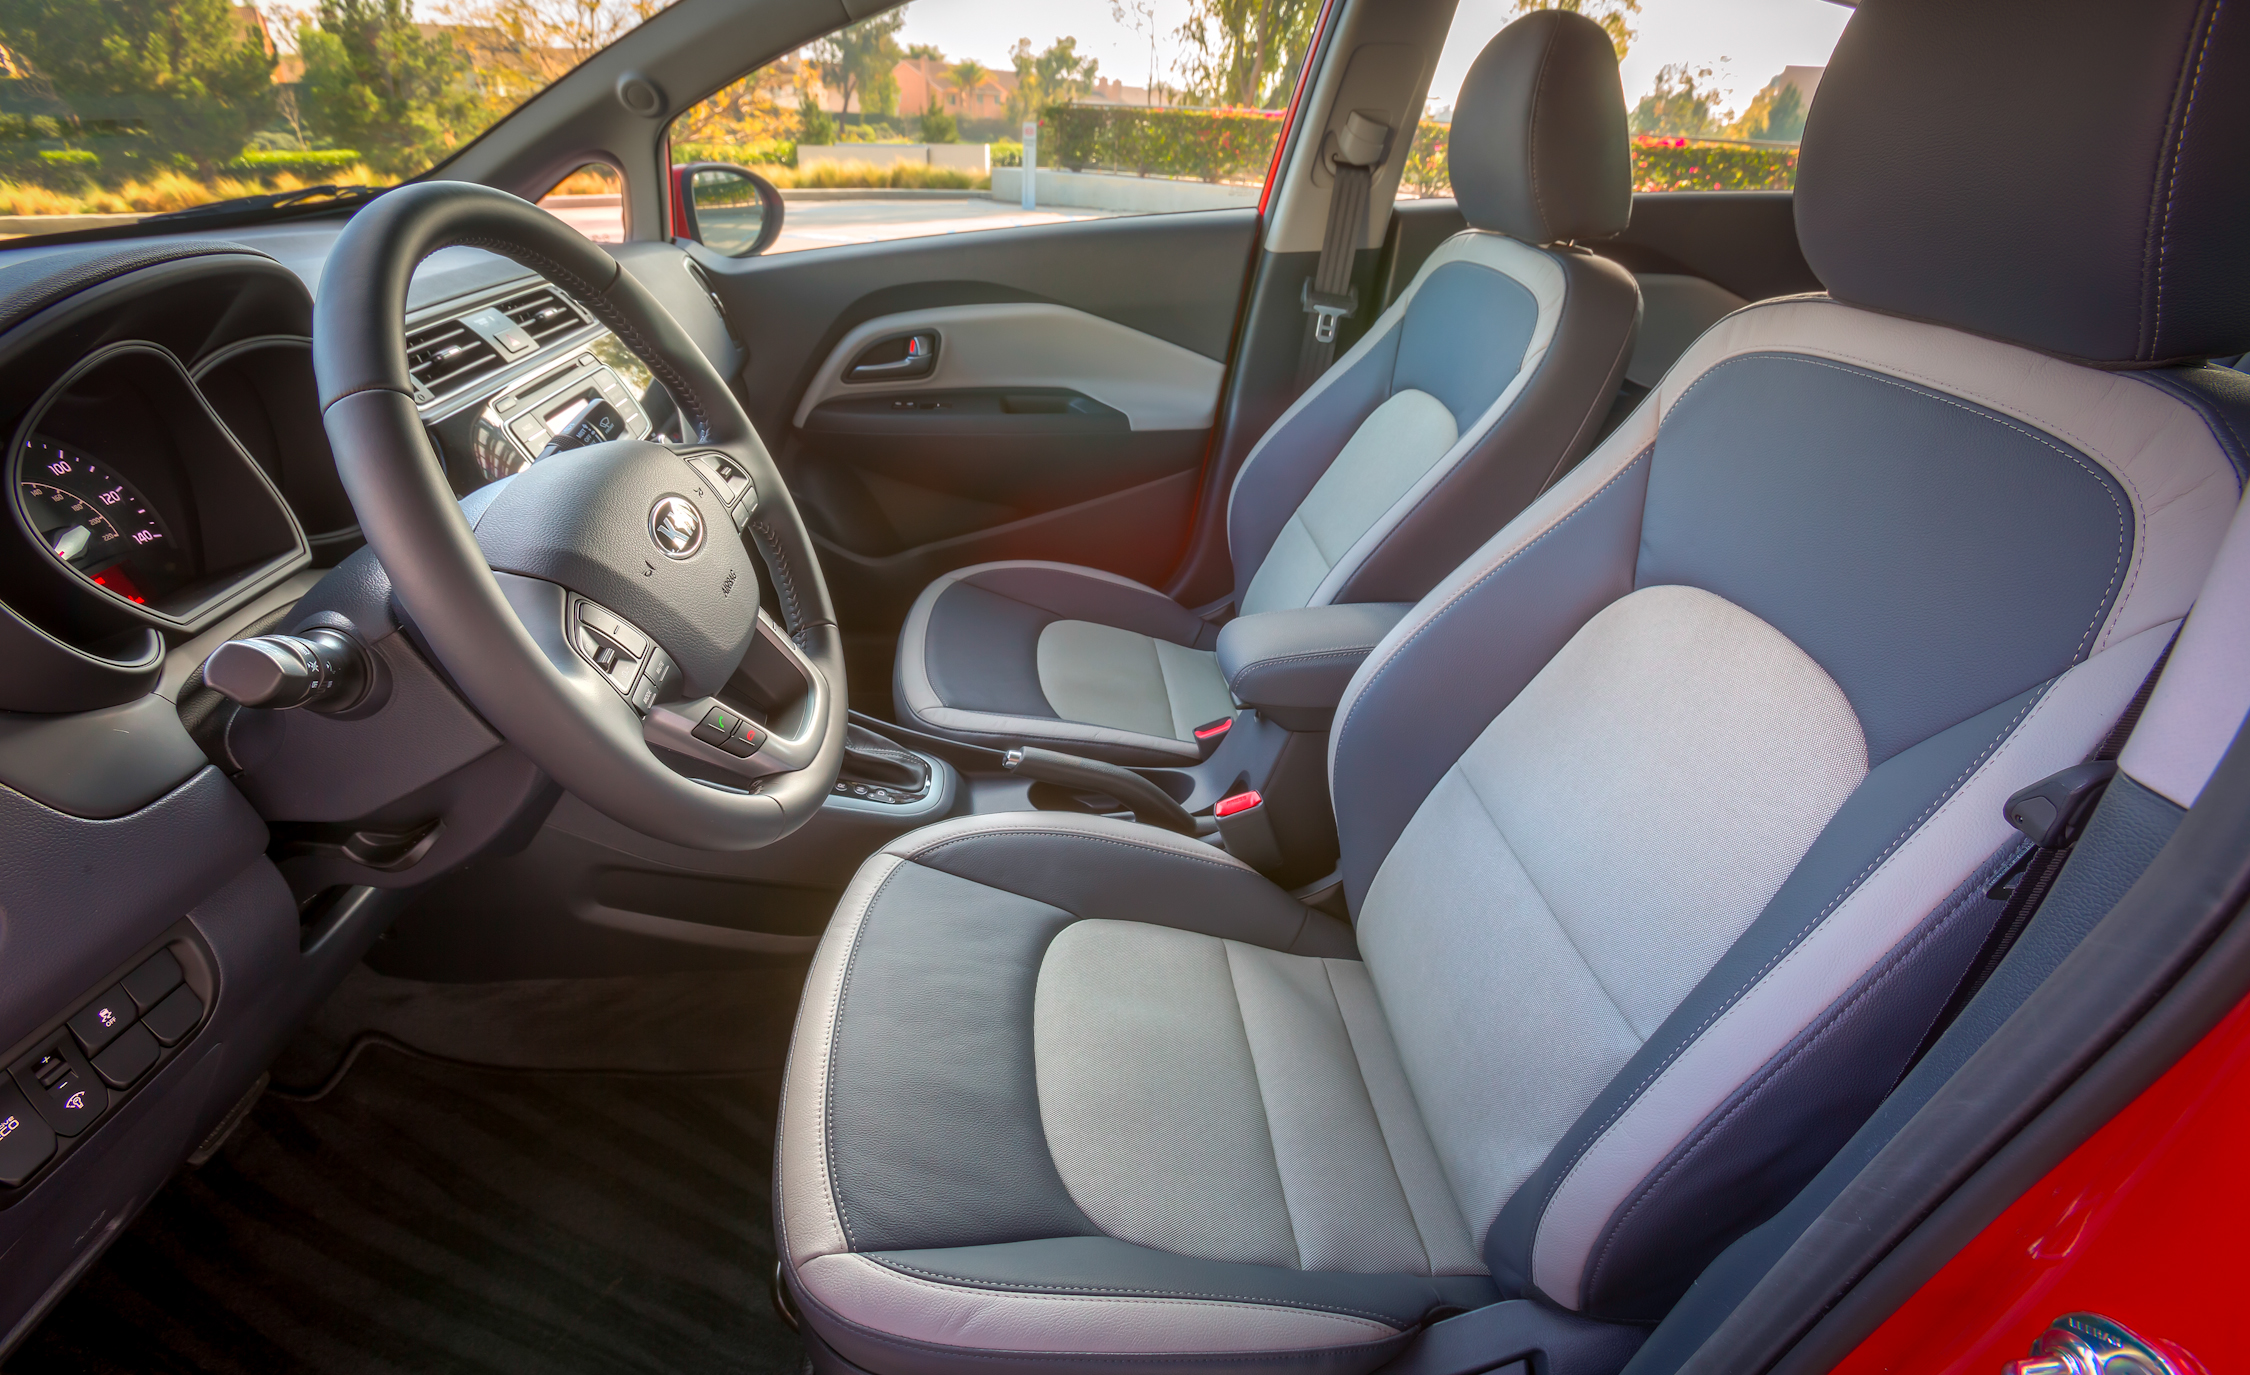 2016 Kia Rio Sedan (View 9 of 19)